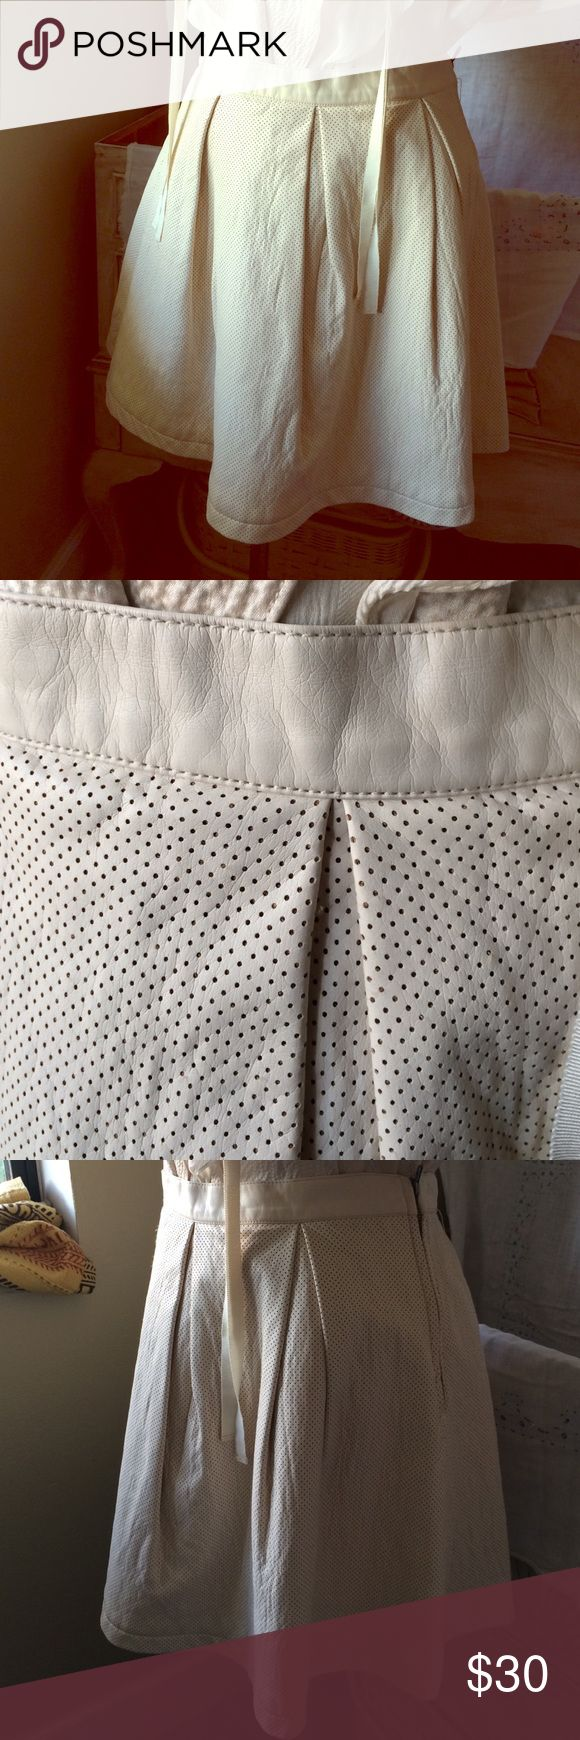 """French Connection pleather mini skirt French Connection mini skirt in vegan leather- pinhole pattern in a creamy vanilla color- large pleats with side zip. Length 17"""" long French Connection Skirts Mini"""